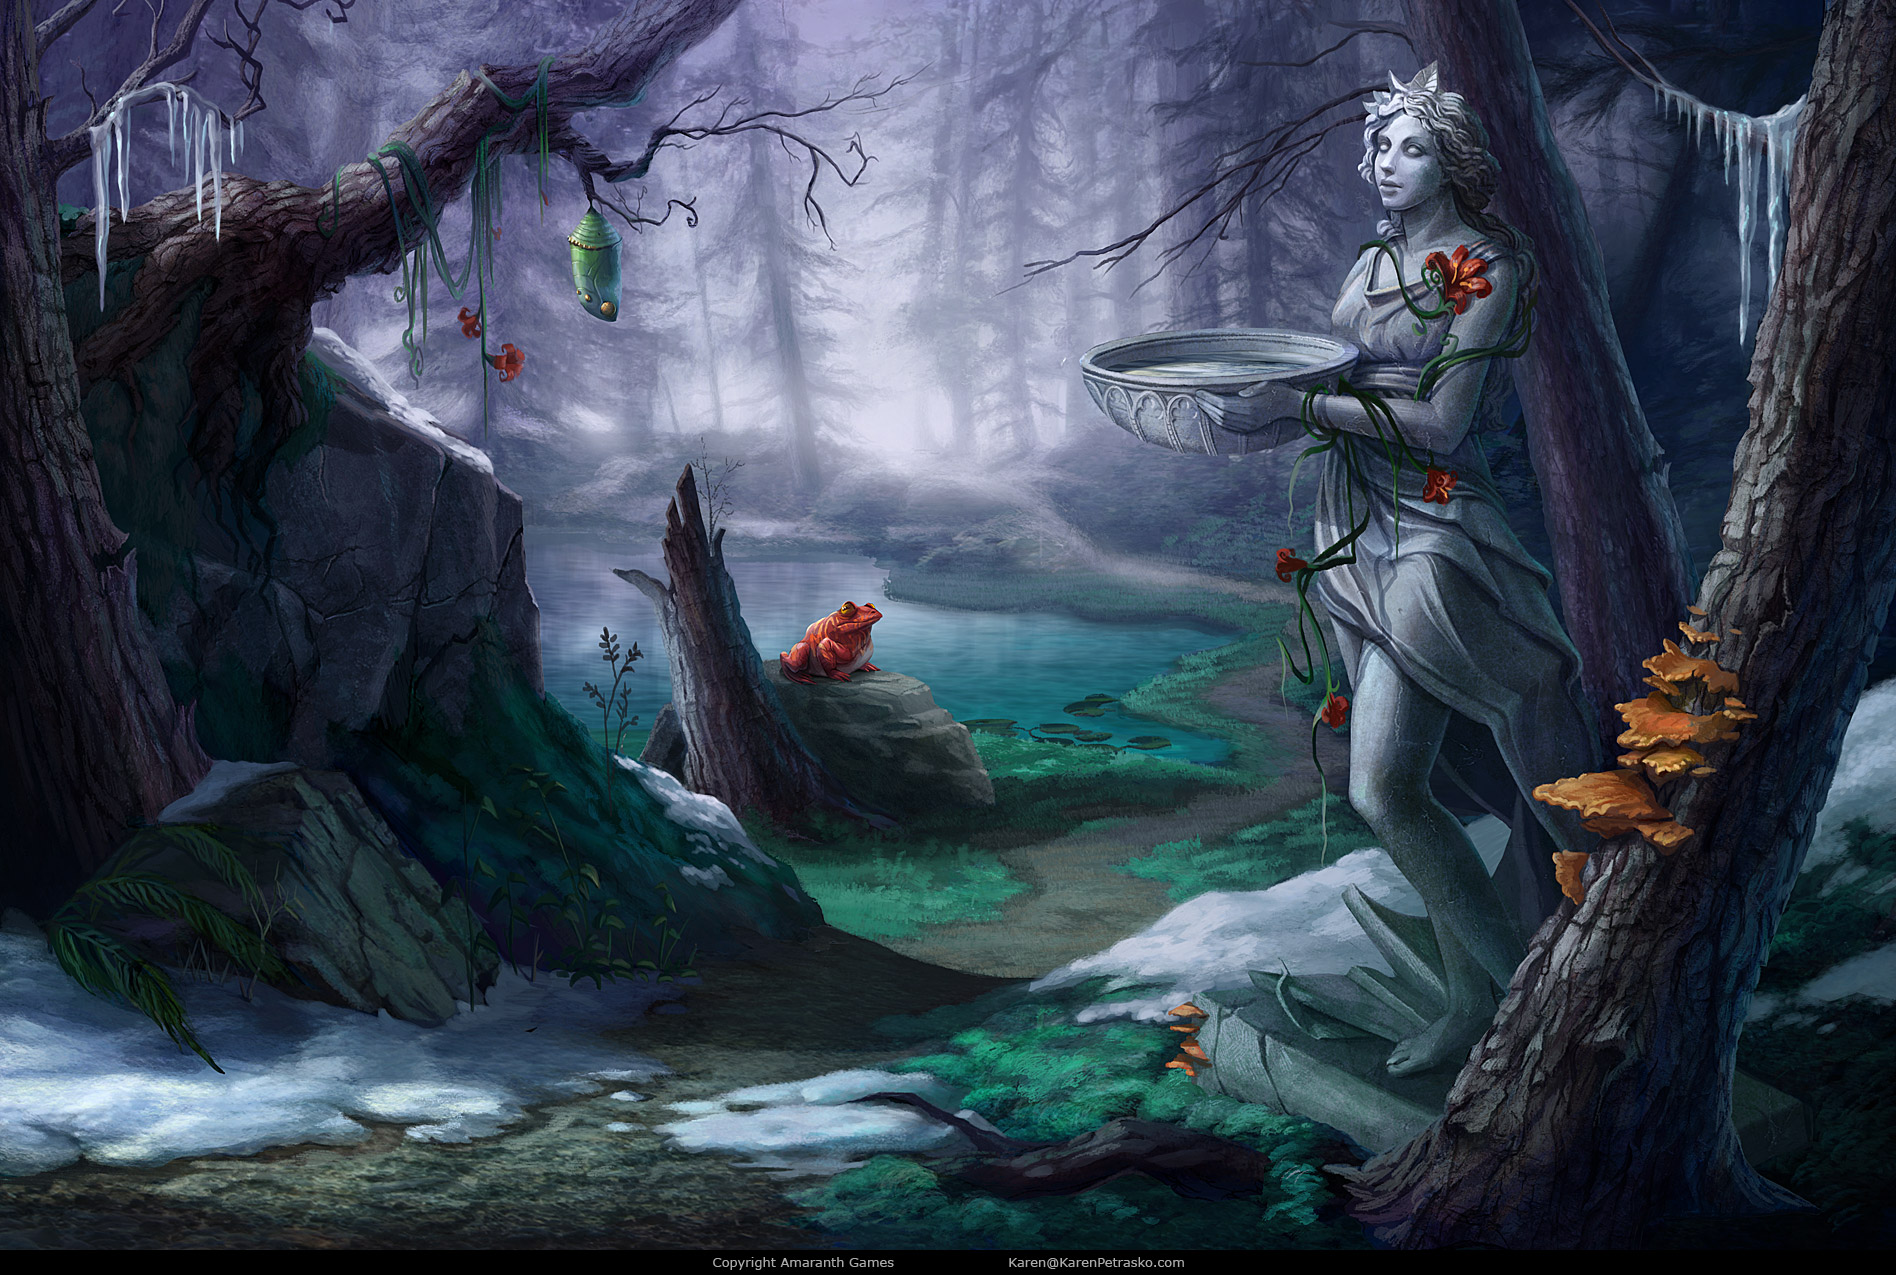 Forgotten Forest created for Curse at Twilight: Thief of Souls